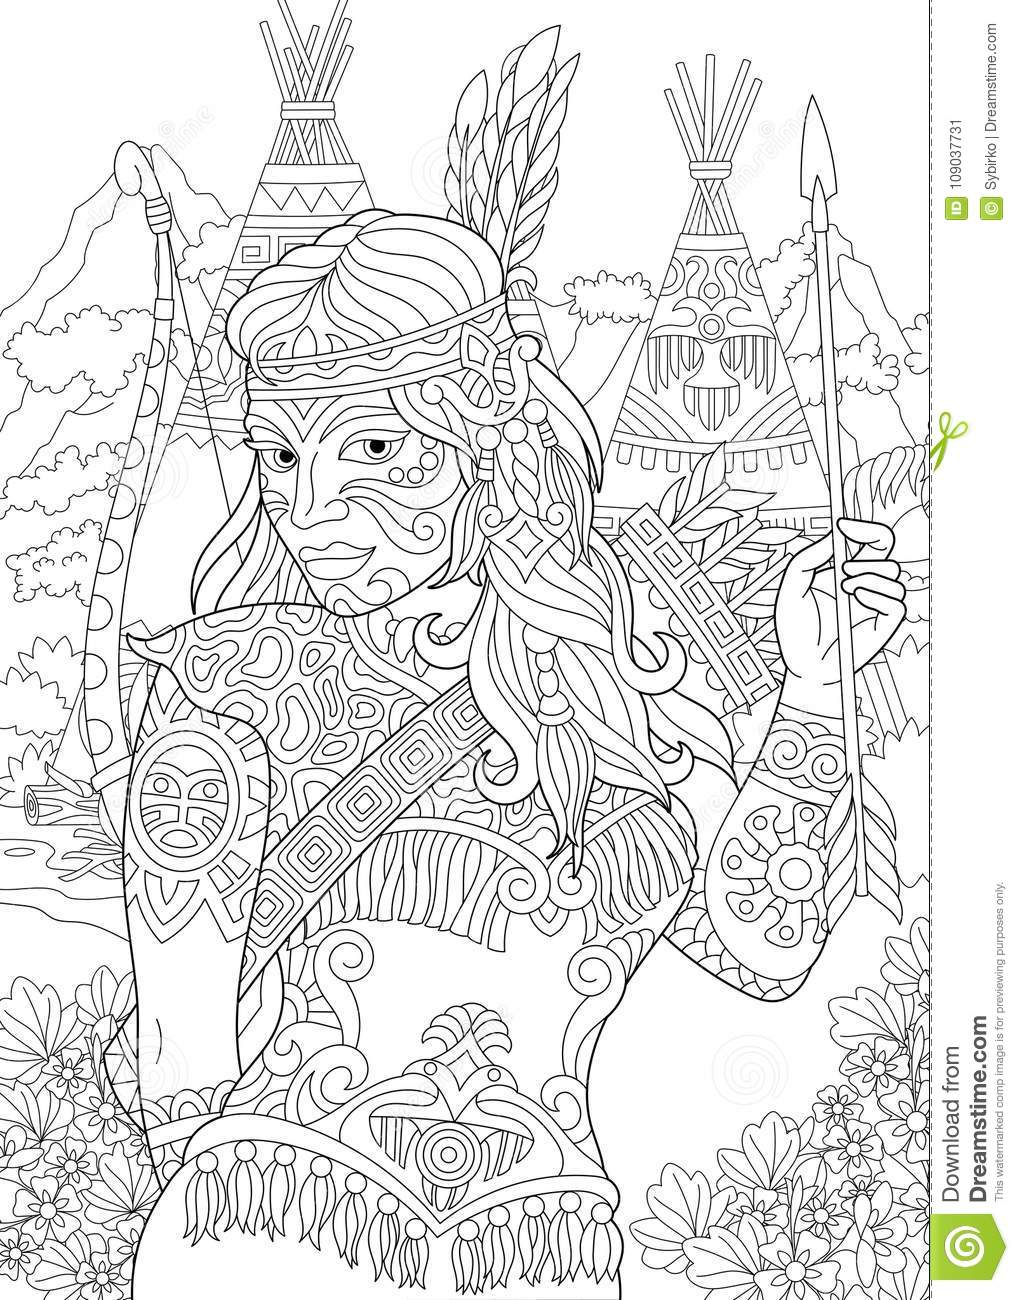 india coloring pages for adults | Cherokee Woman Stock Illustrations – 188 Cherokee Woman ...